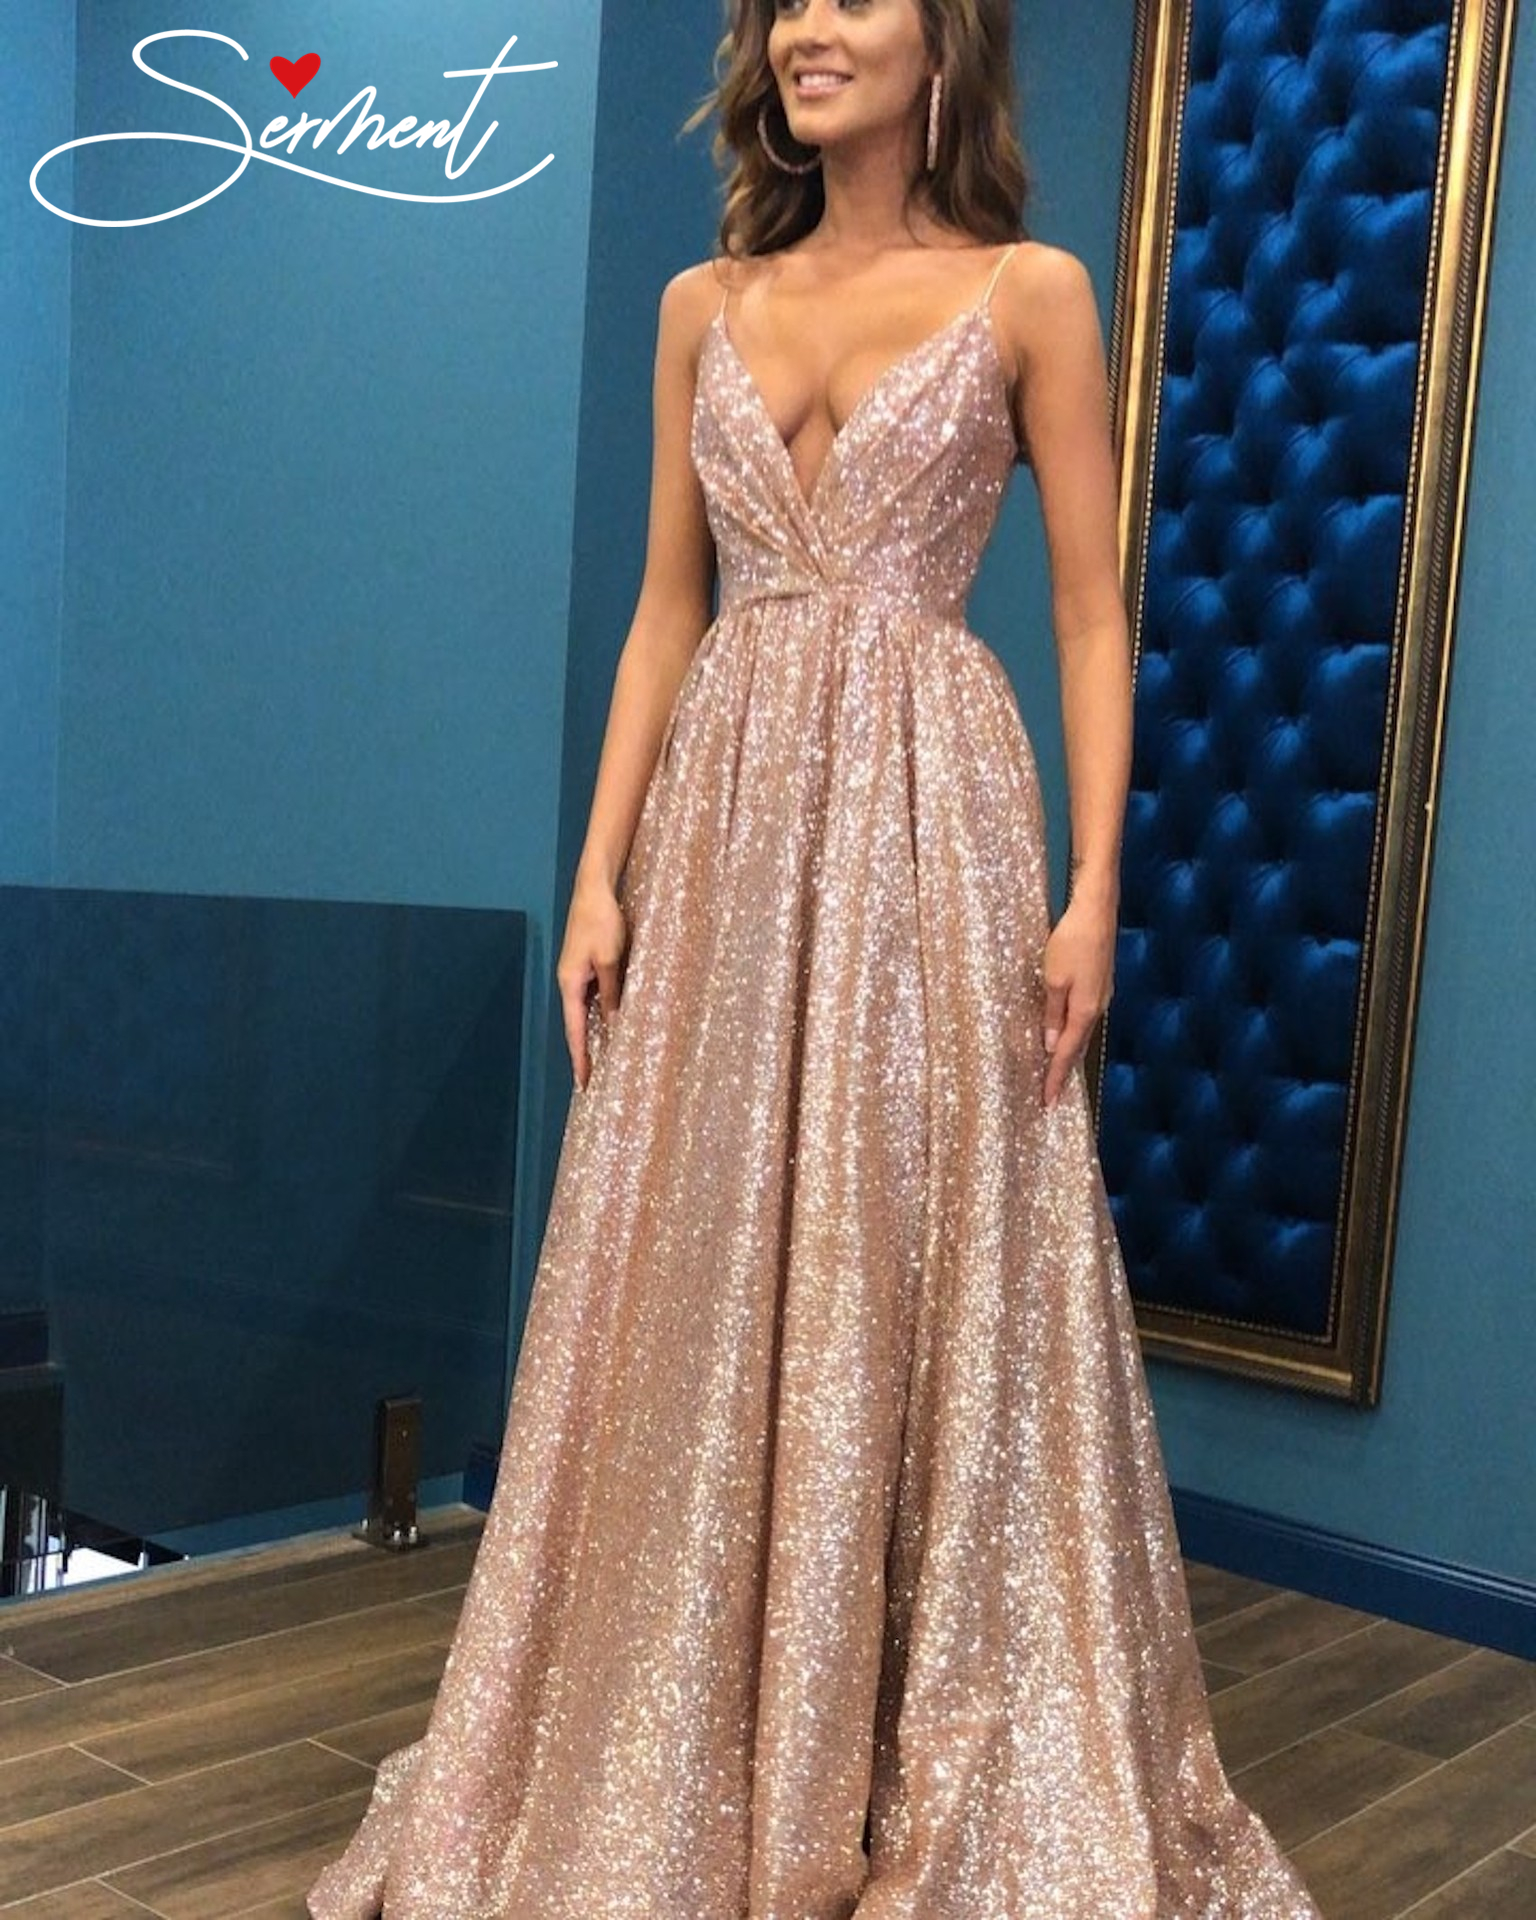 SERMENT Autumn New Women's Explosion Models Sexy Sling Deep V-neck Gold Evening Dress Dress Suitable For Formal Evening Clubs